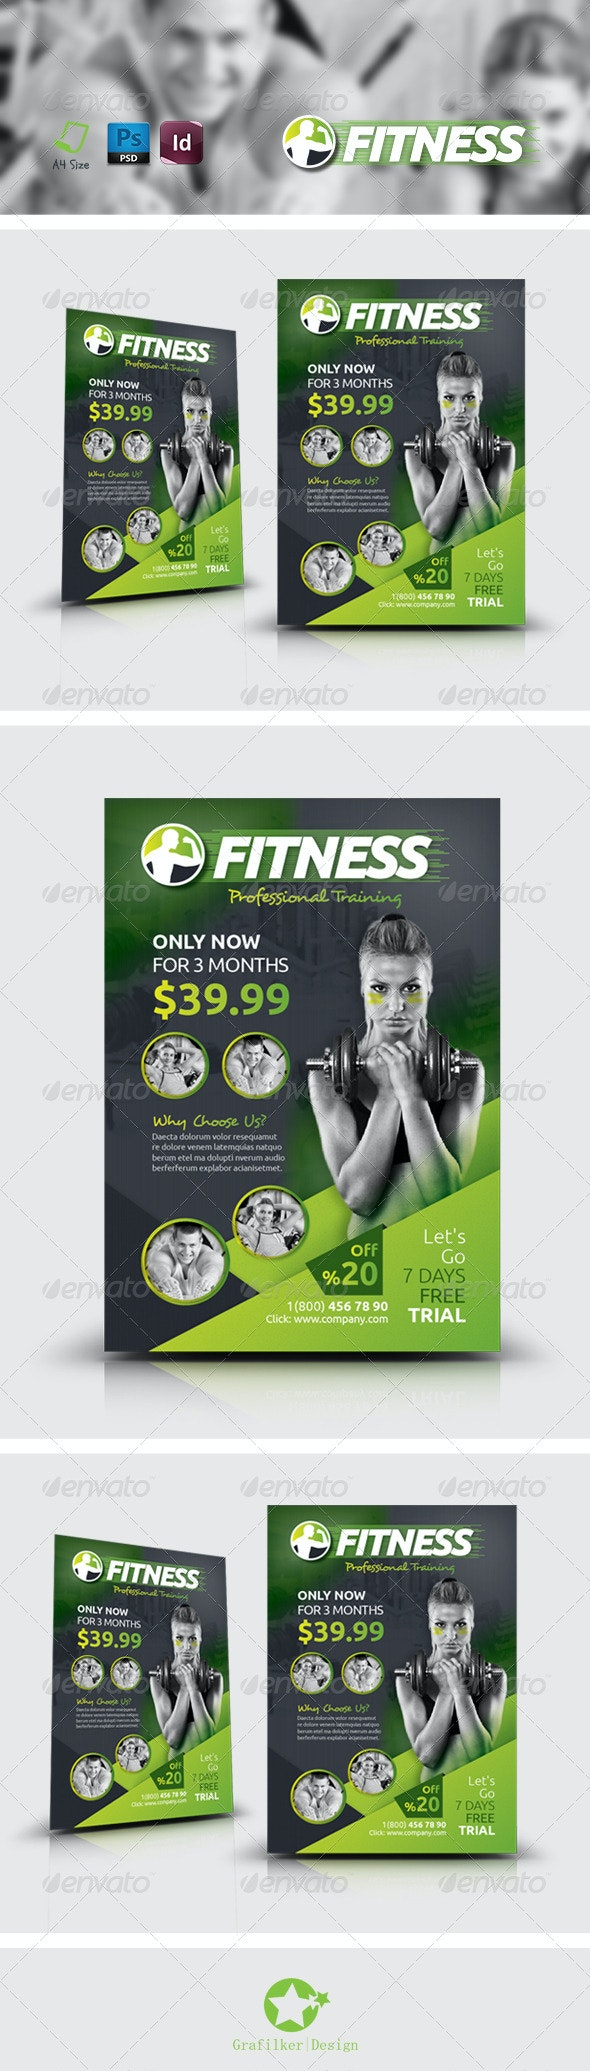 Fitness Salon Flyer Templates - Corporate Flyers